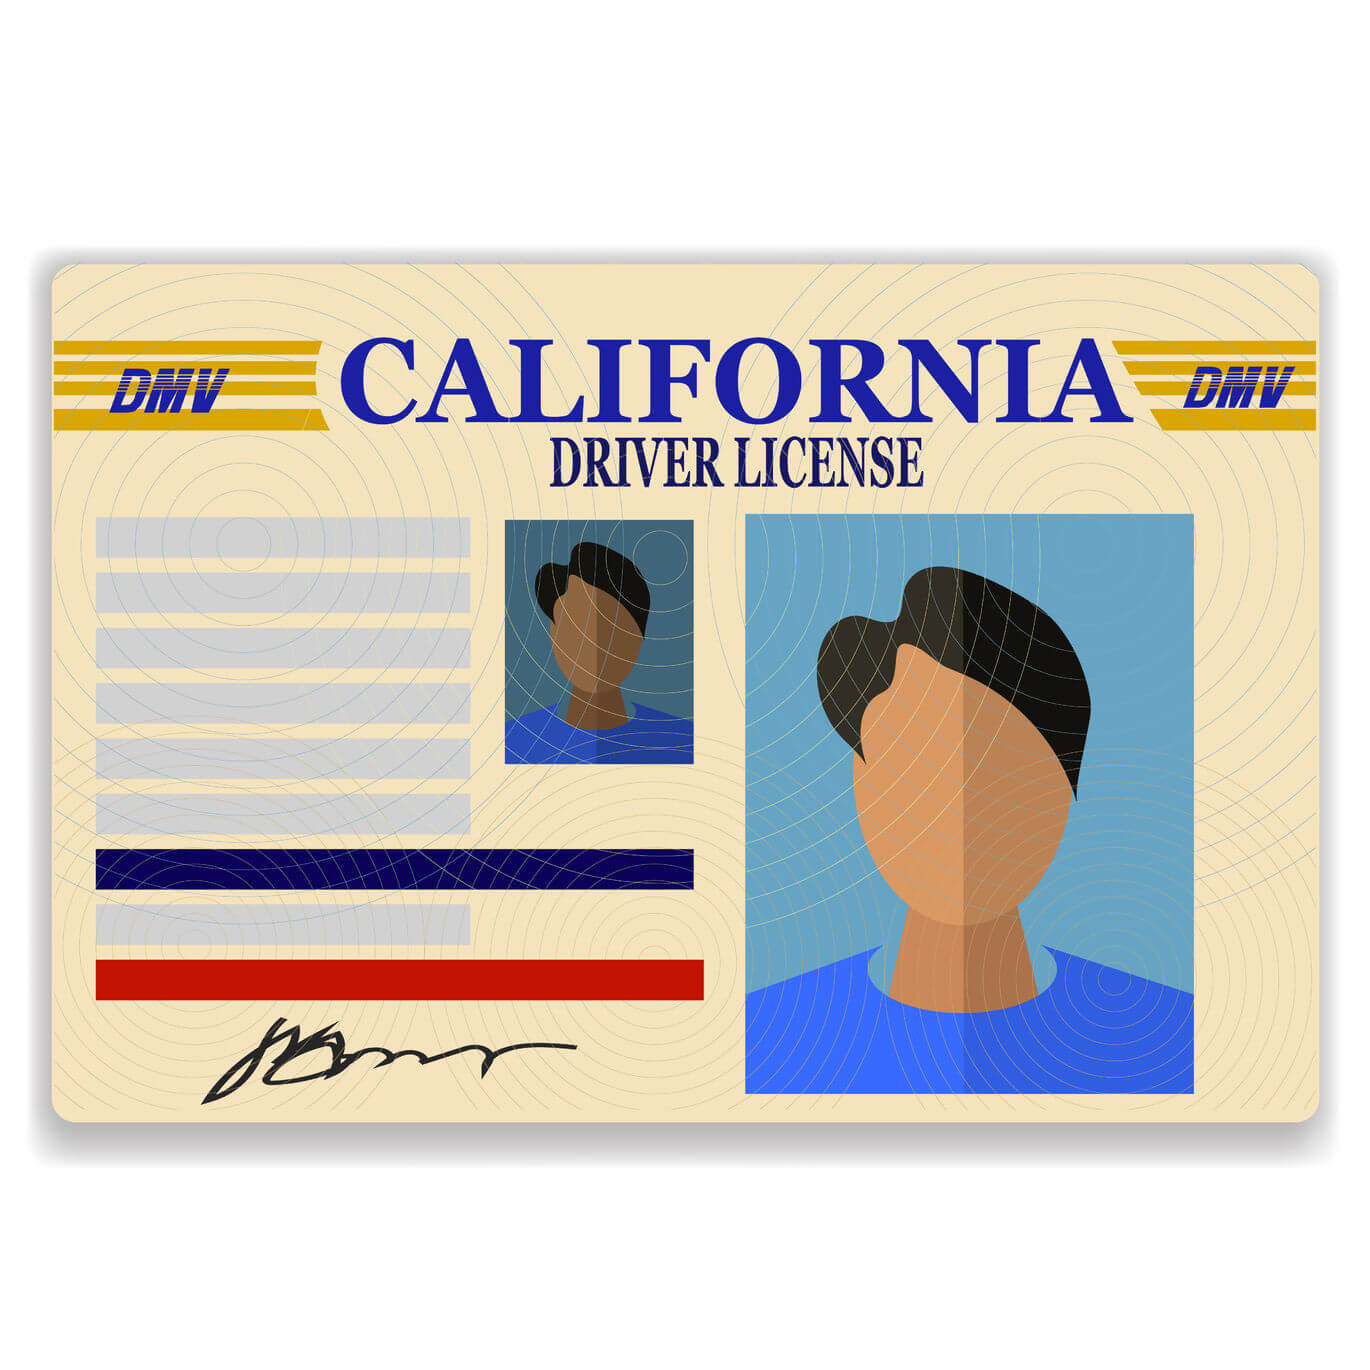 Does Your State Driver's License Comply With The REAL ID Act?